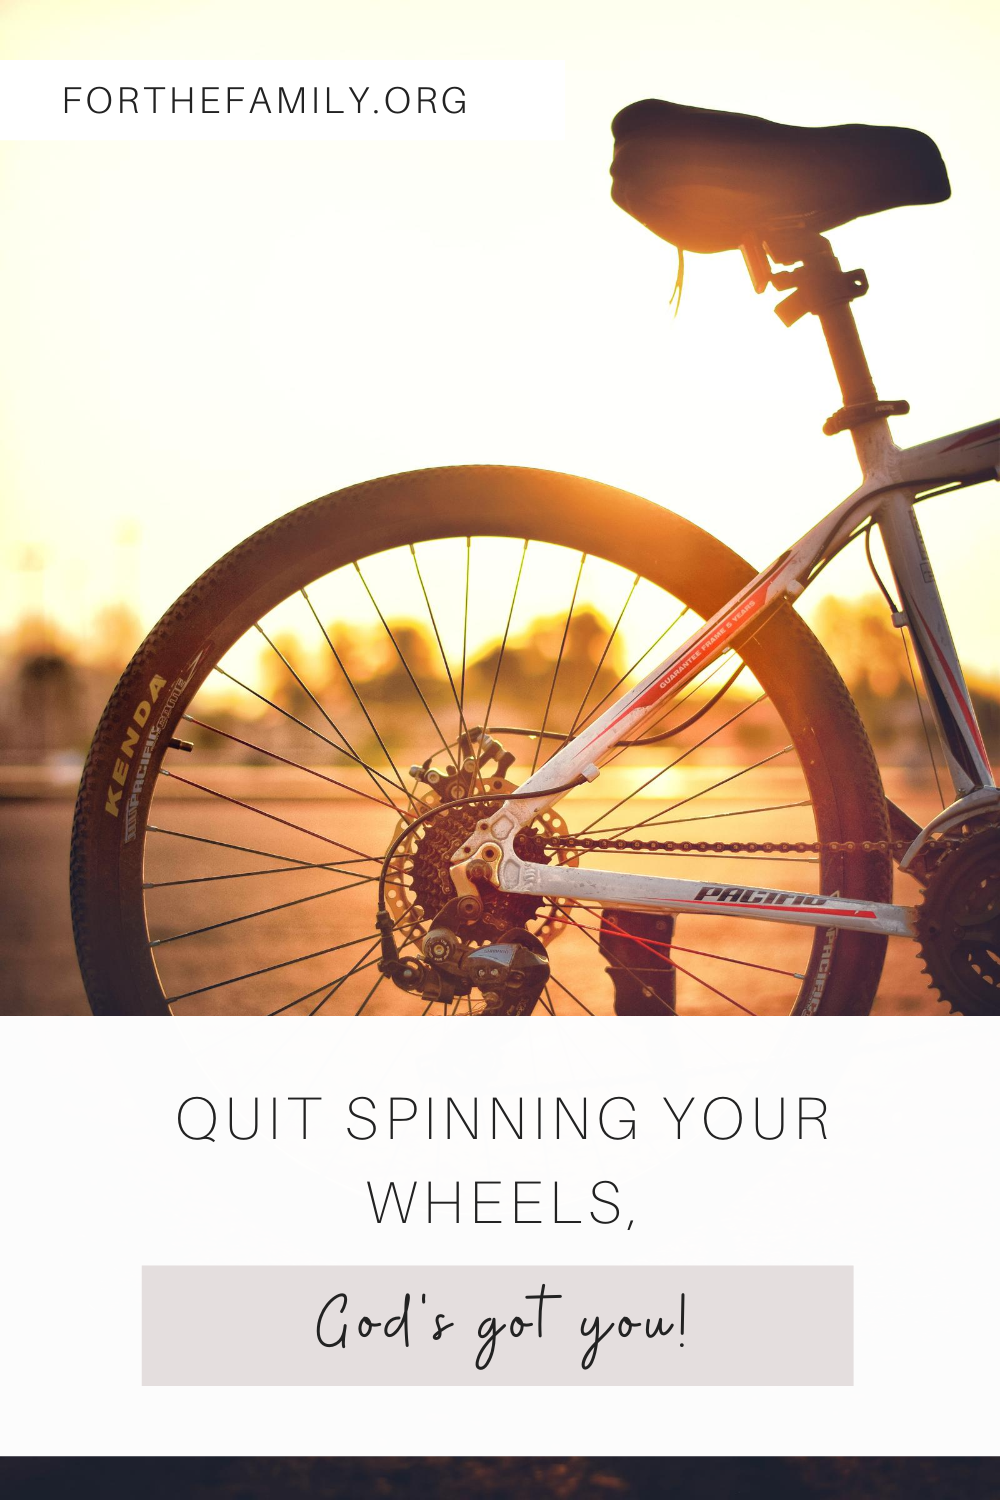 Do you feel like you are spinning your wheels but not getting anywhere? You are not alone! We endlessly strive to try and control our situations, while God waits lovingly for us to submit and allow Him to move and work in our lives! Let's stop peddling, and enjoy the ride!